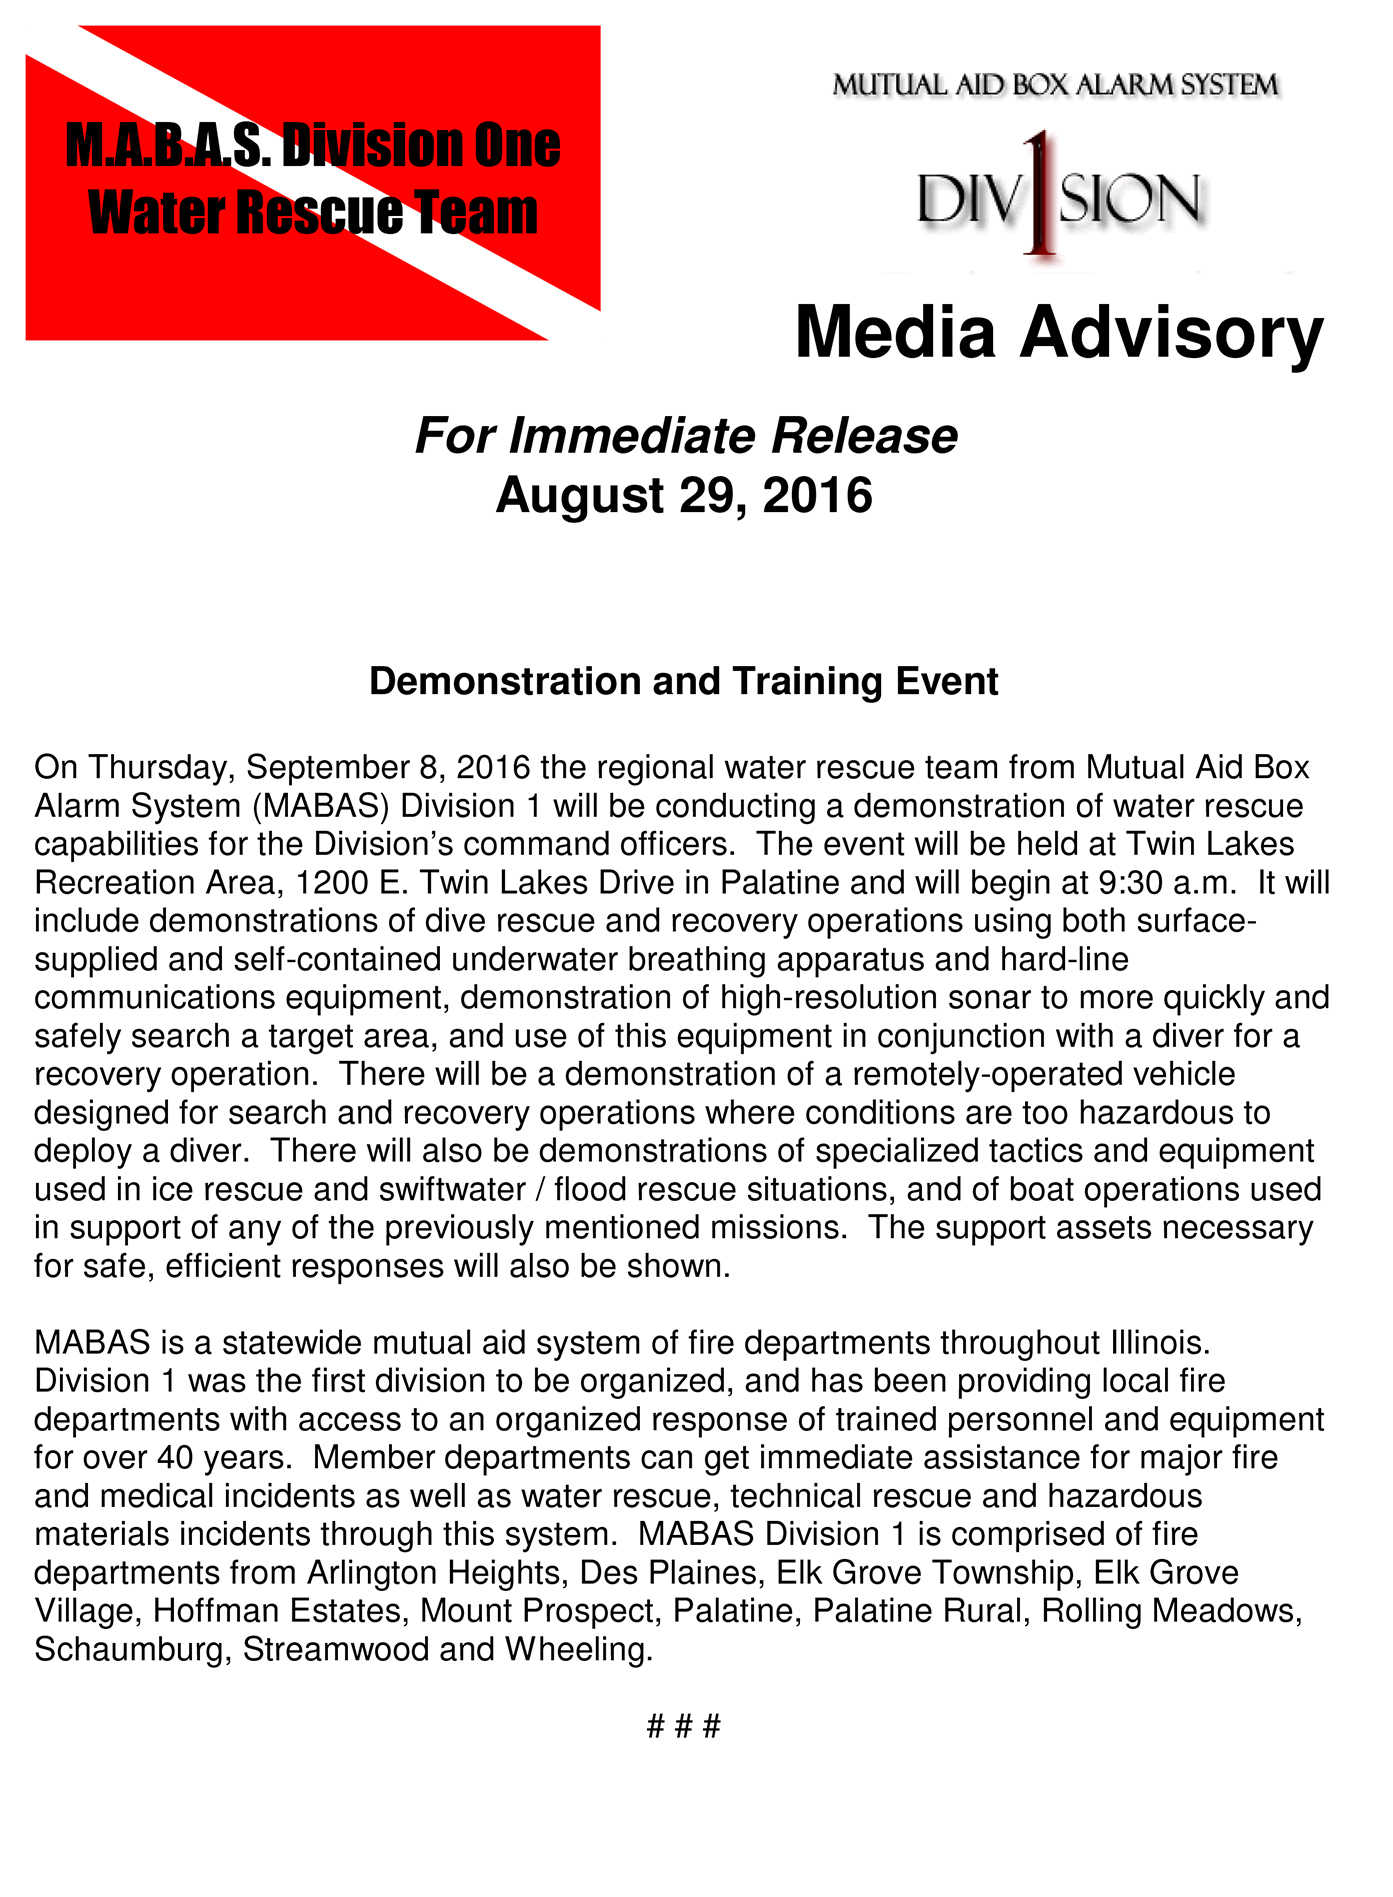 Microsoft Word - Dive Demo 2016 Media Advisory.doc